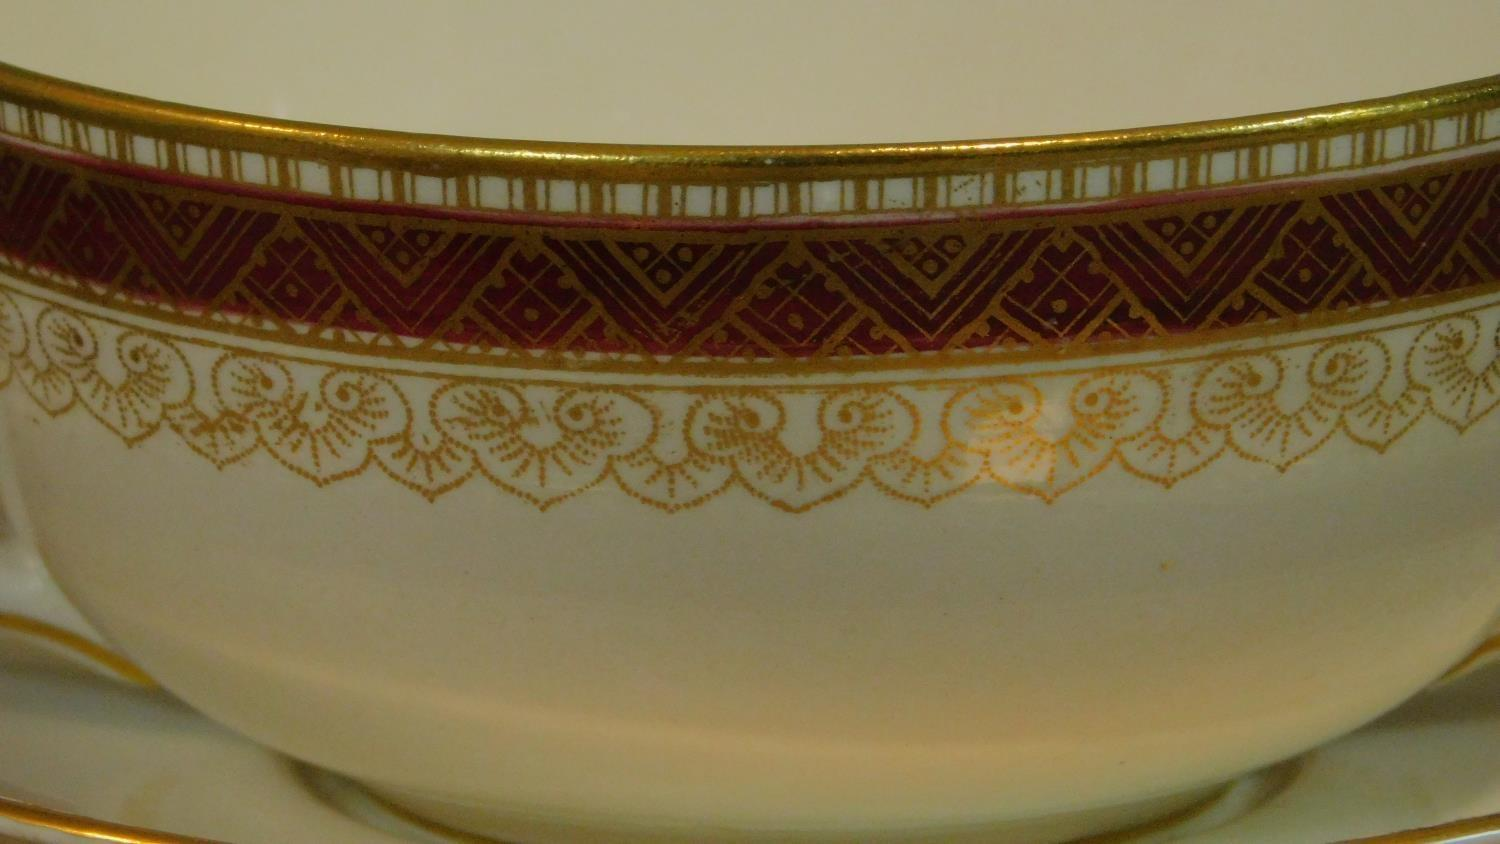 A Loselware part dinner service, dinner plates, side plates, soup bowls, tureens etc. - Image 5 of 6